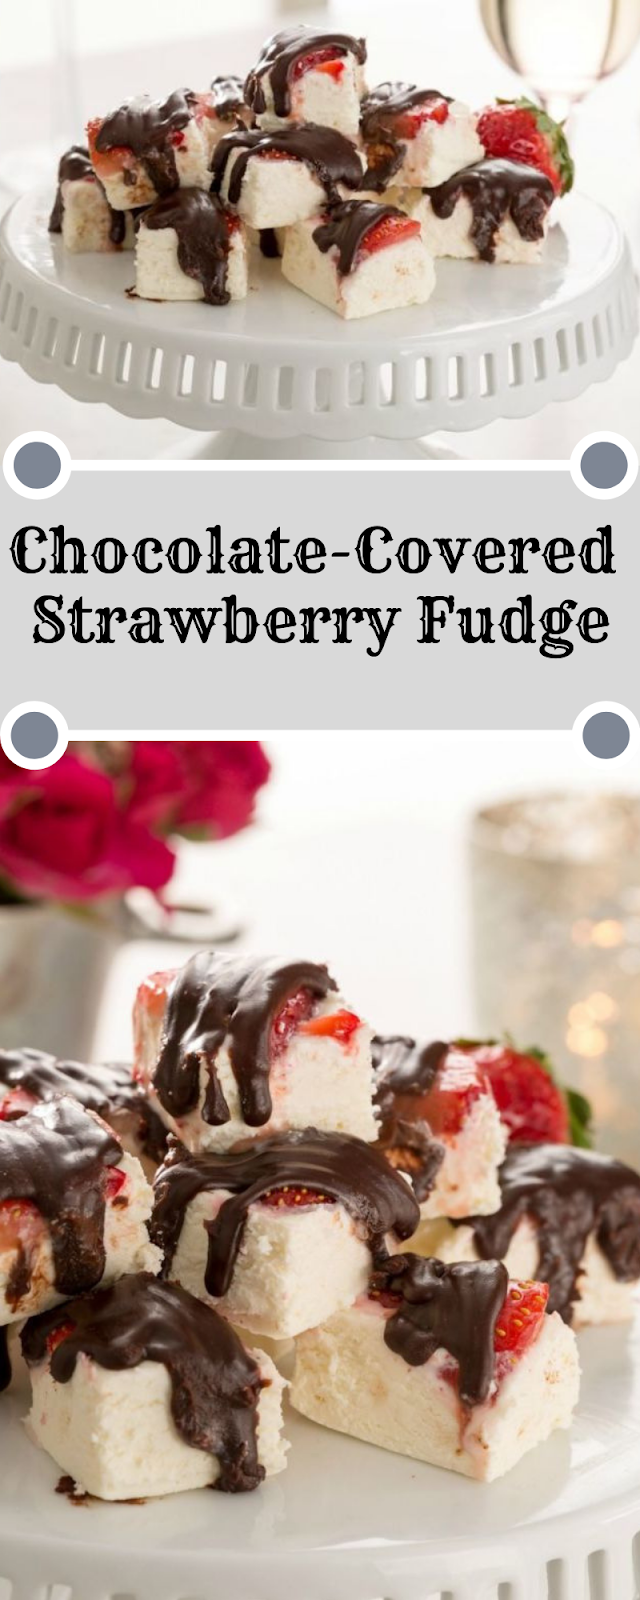 Chocolate-Covered Strawberry Fudge